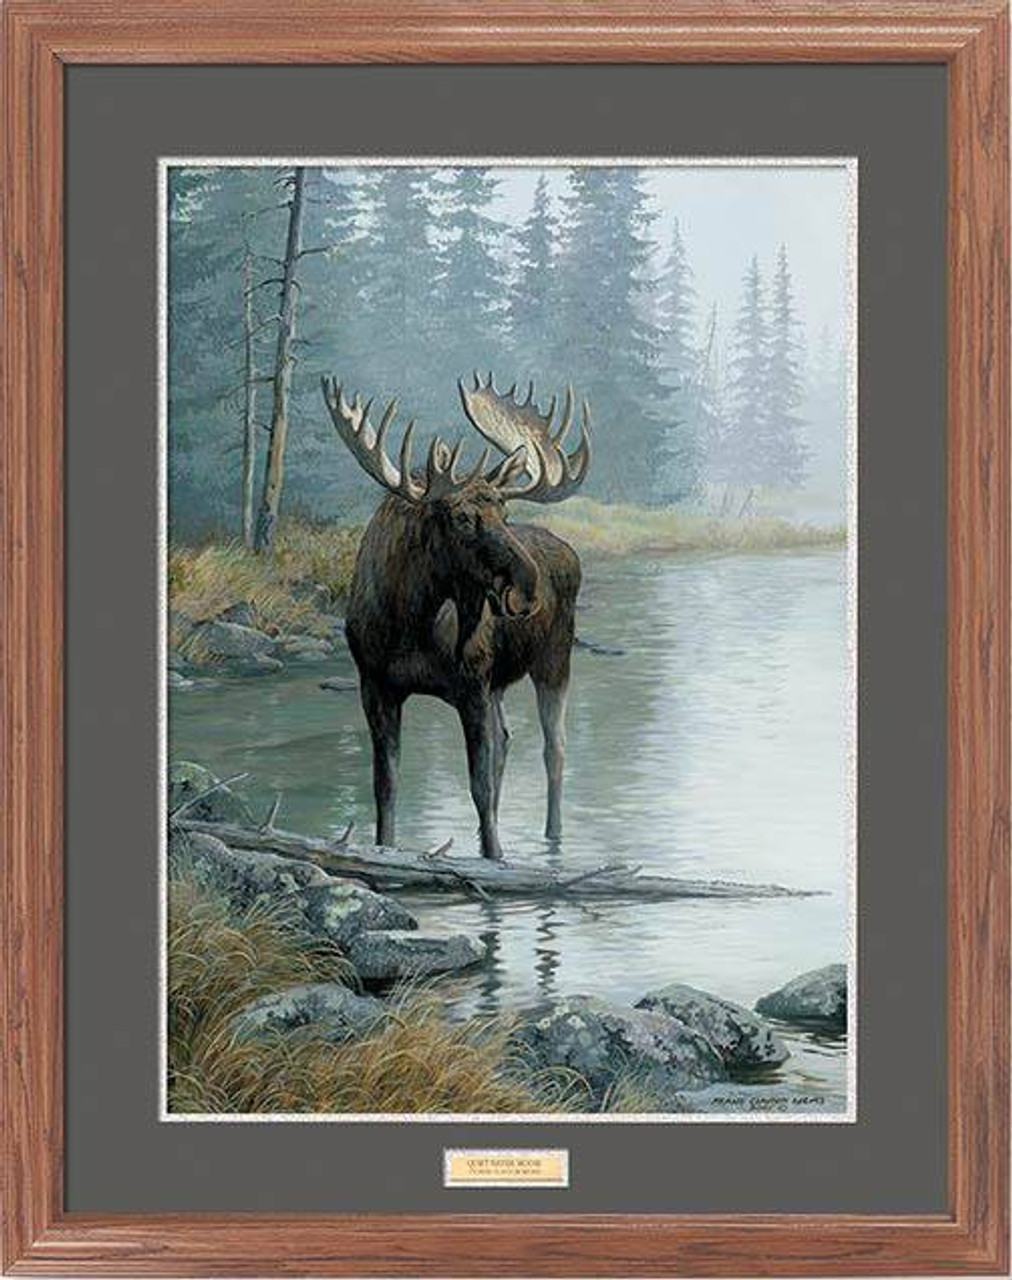 Bull Shore Moose Framed Art | American Expedition